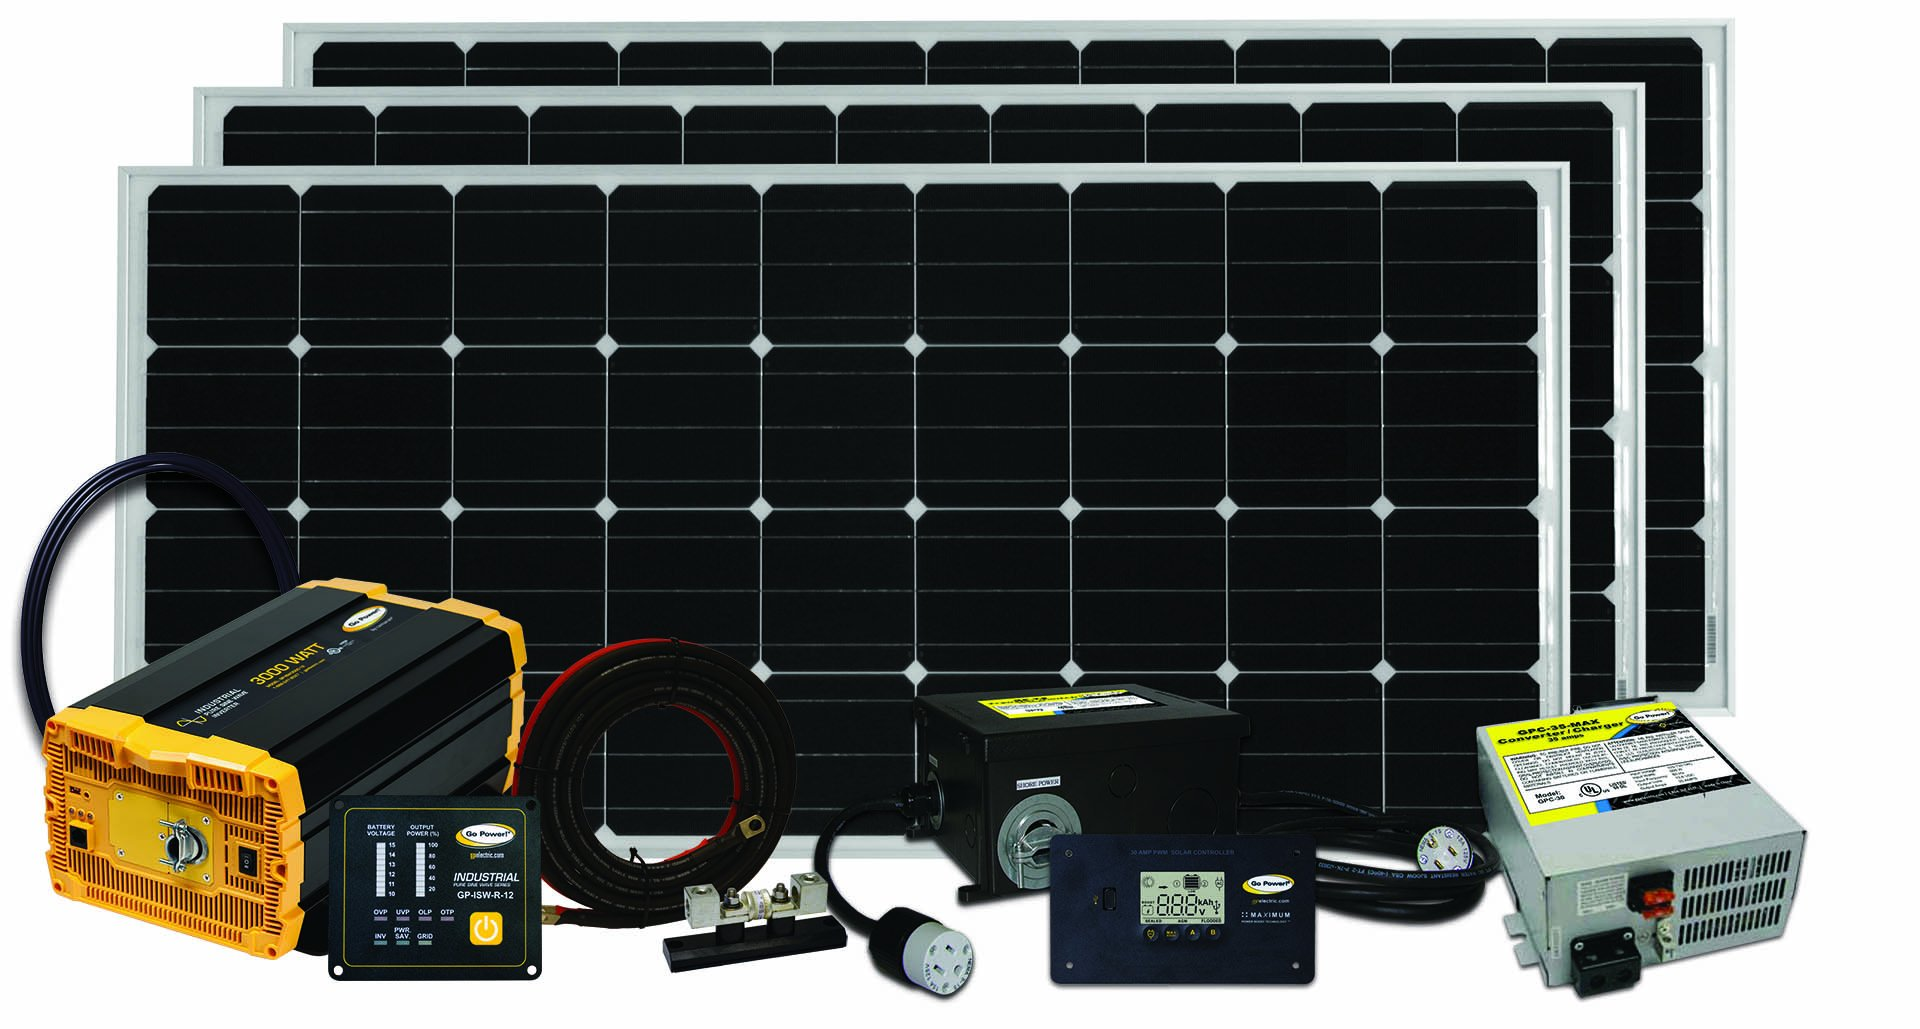 Go Power! Solar Extreme Complete Solar and Inverter System with 480 Watts of Solar by Go Power!